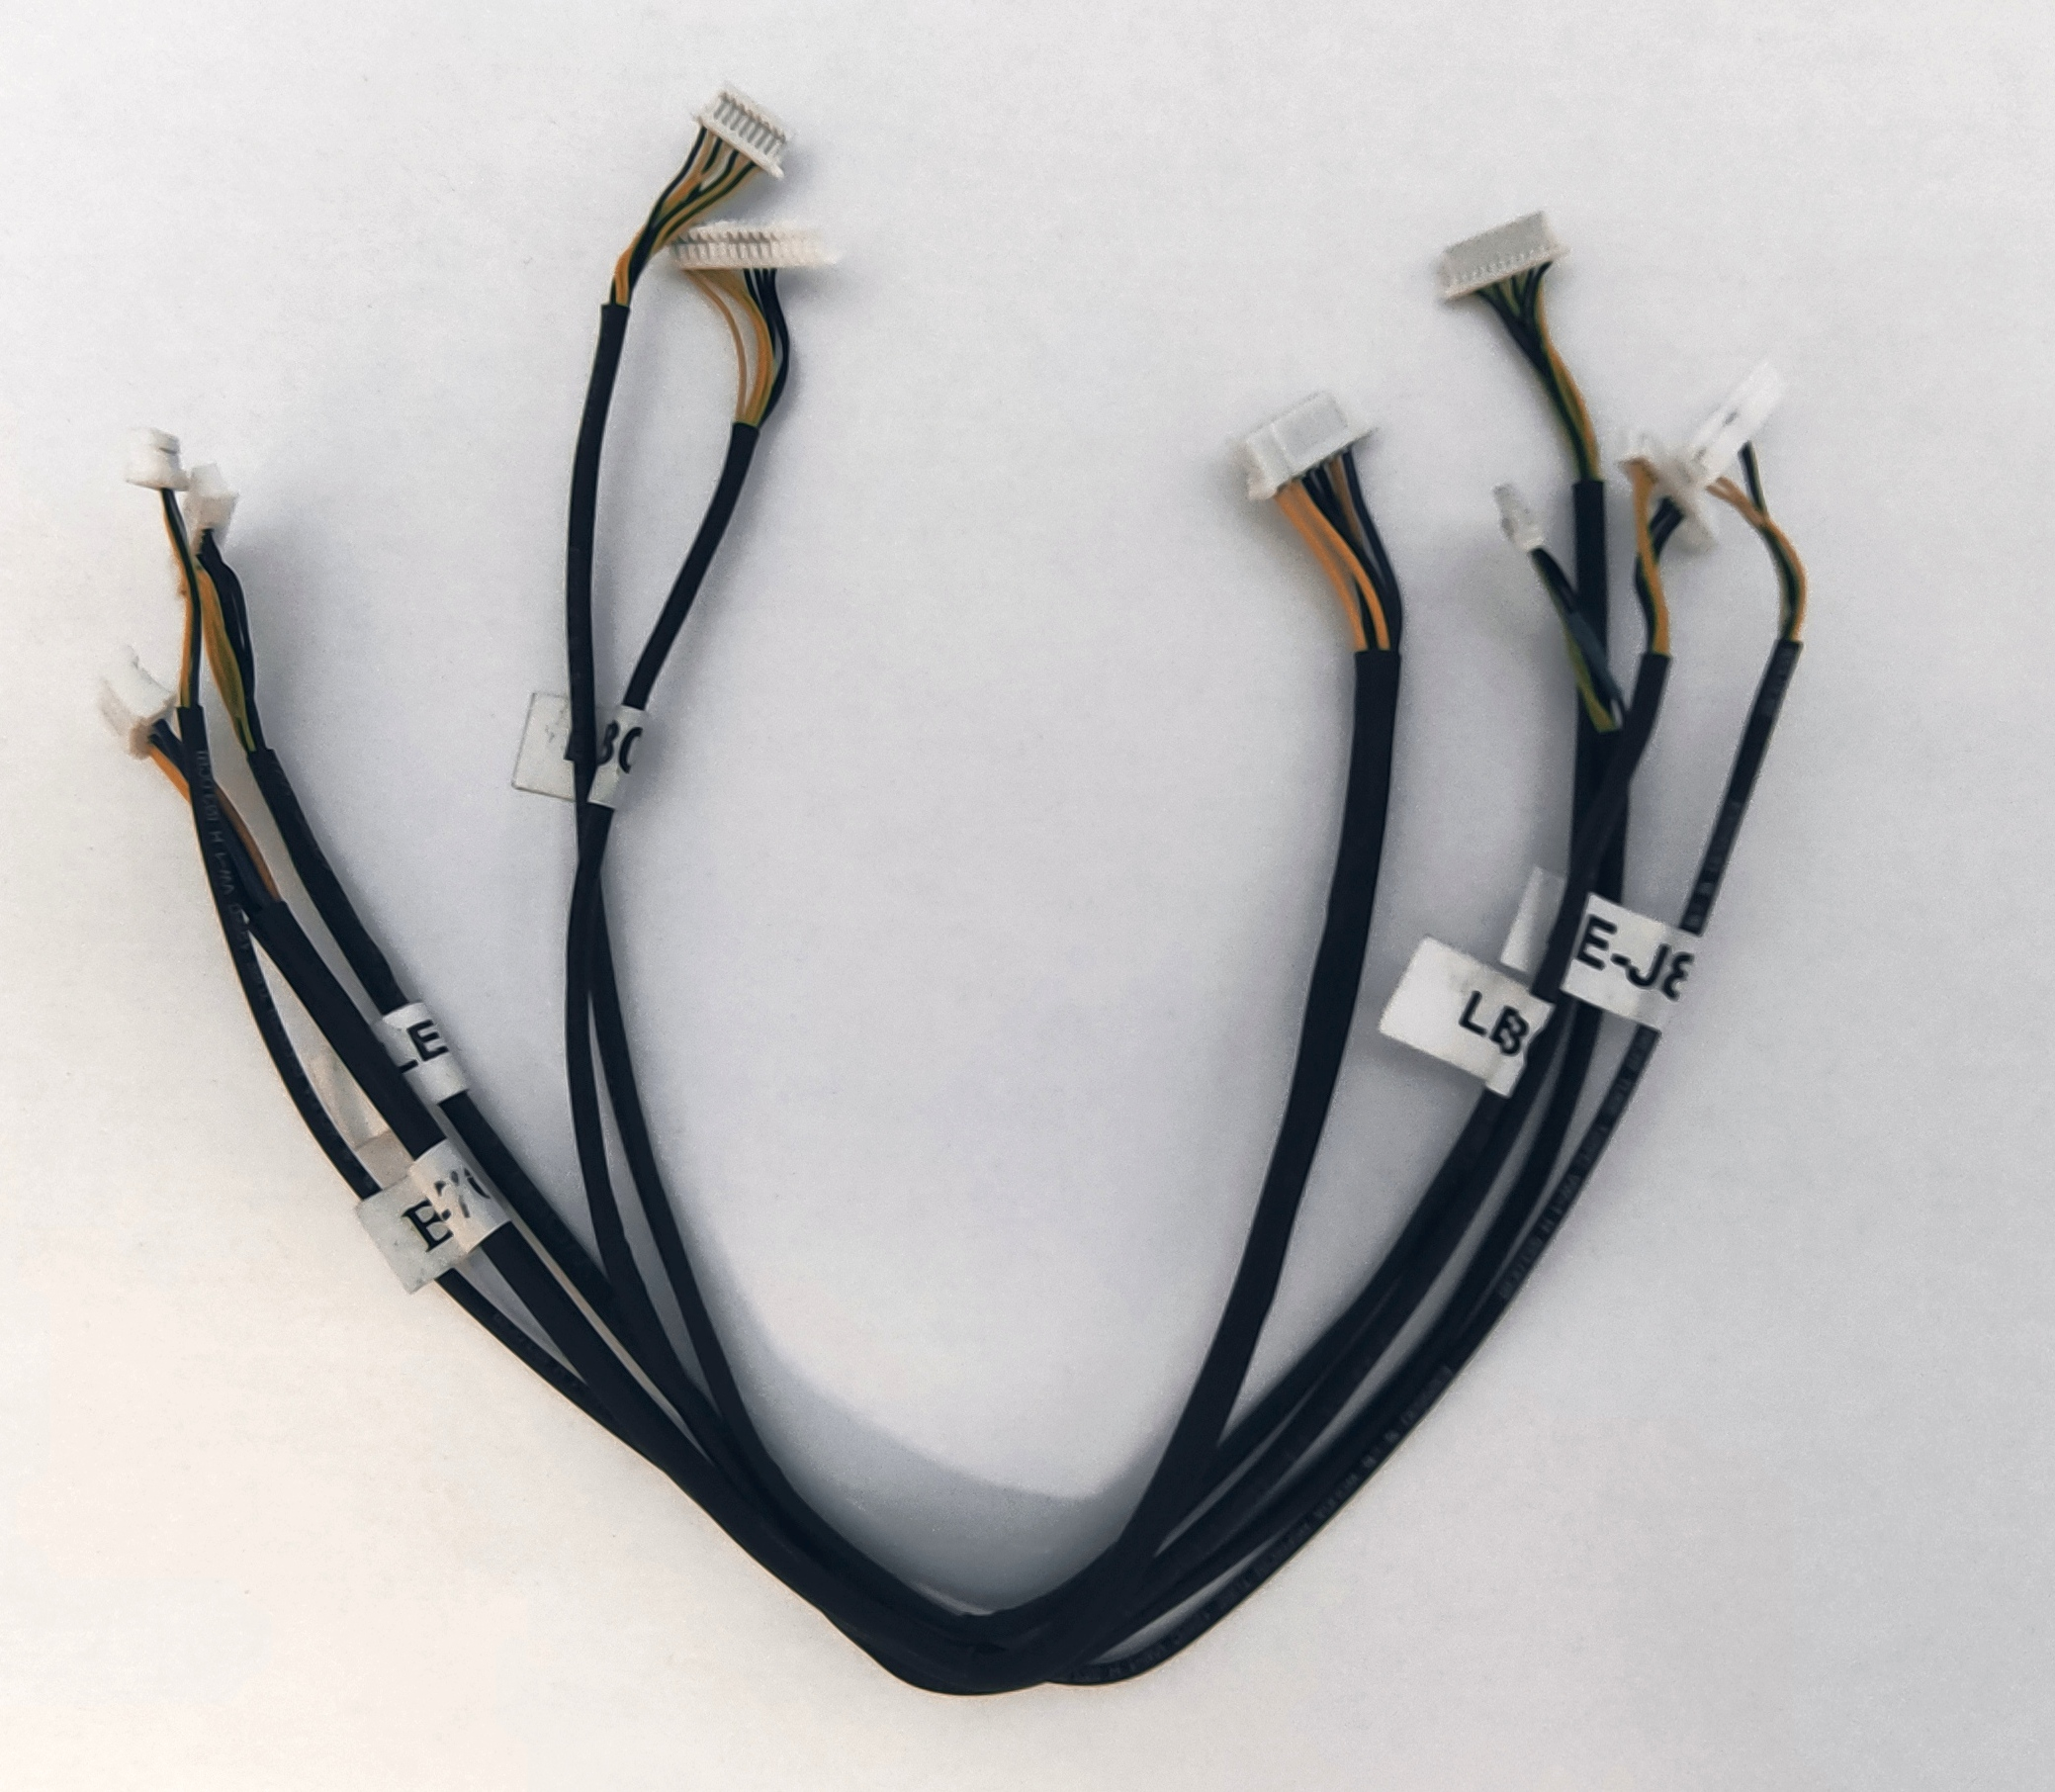 BT-cable-70637